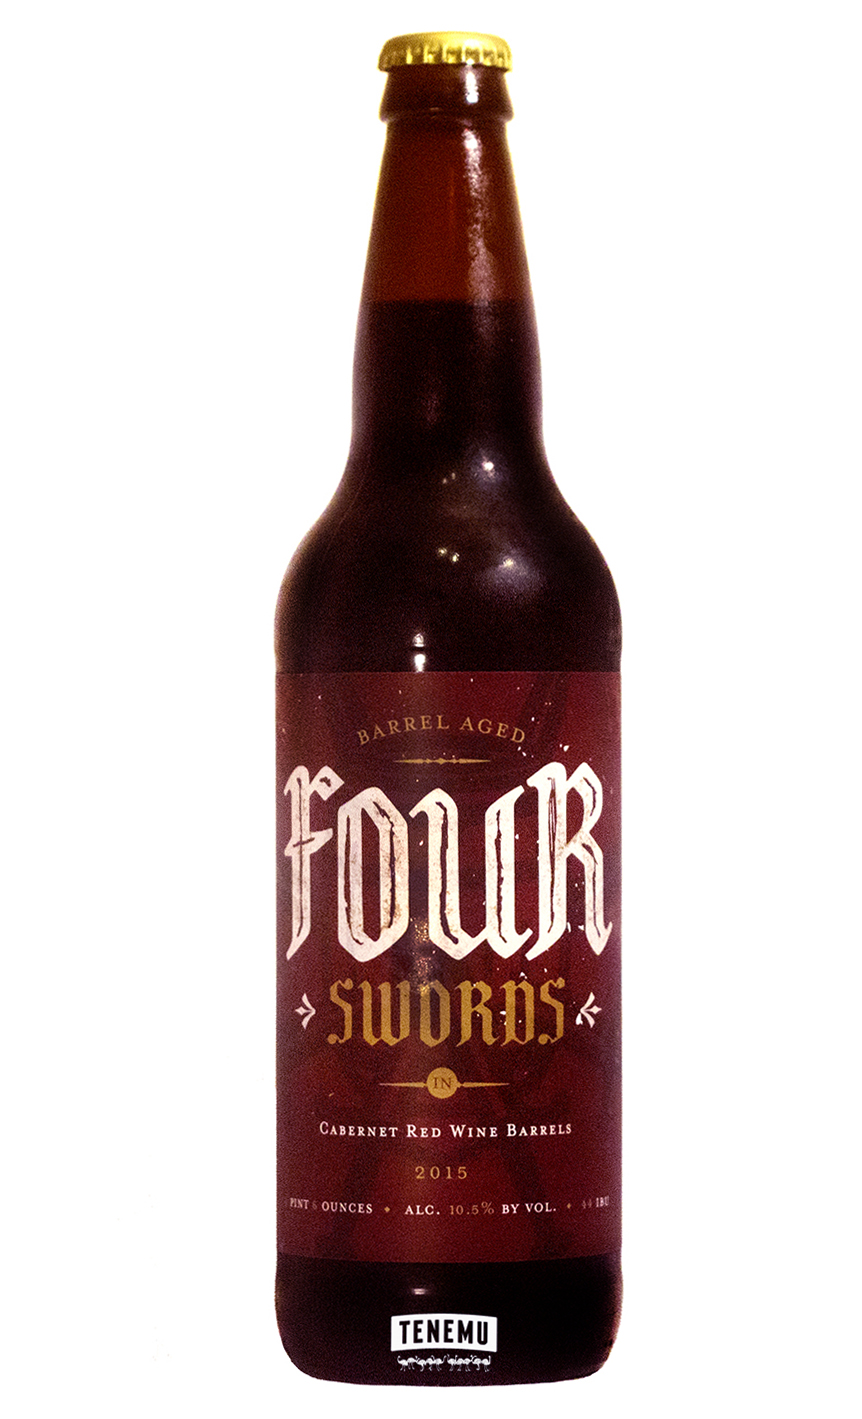 Deep Ellum Four Swords Cabernet Barrel Aged bottle